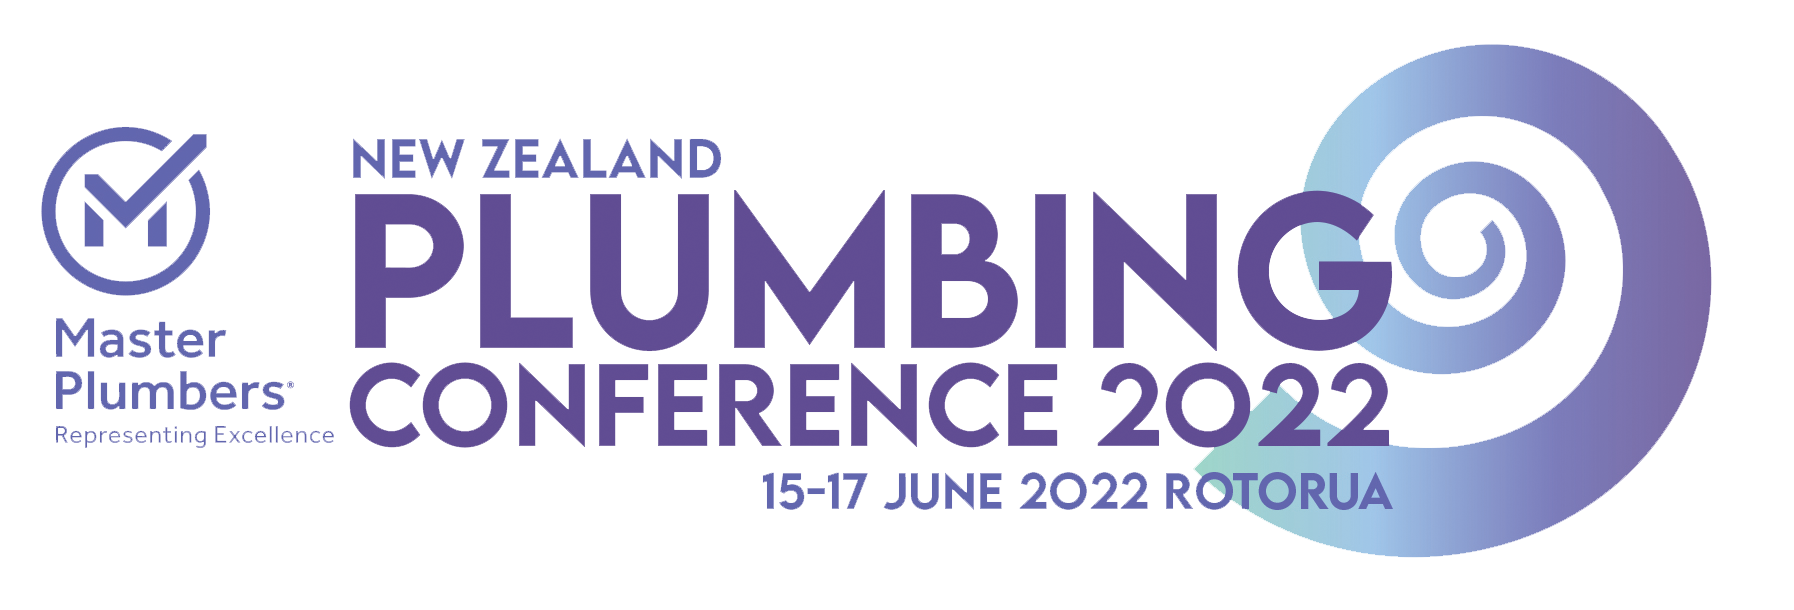 NZ Plumbing Conference